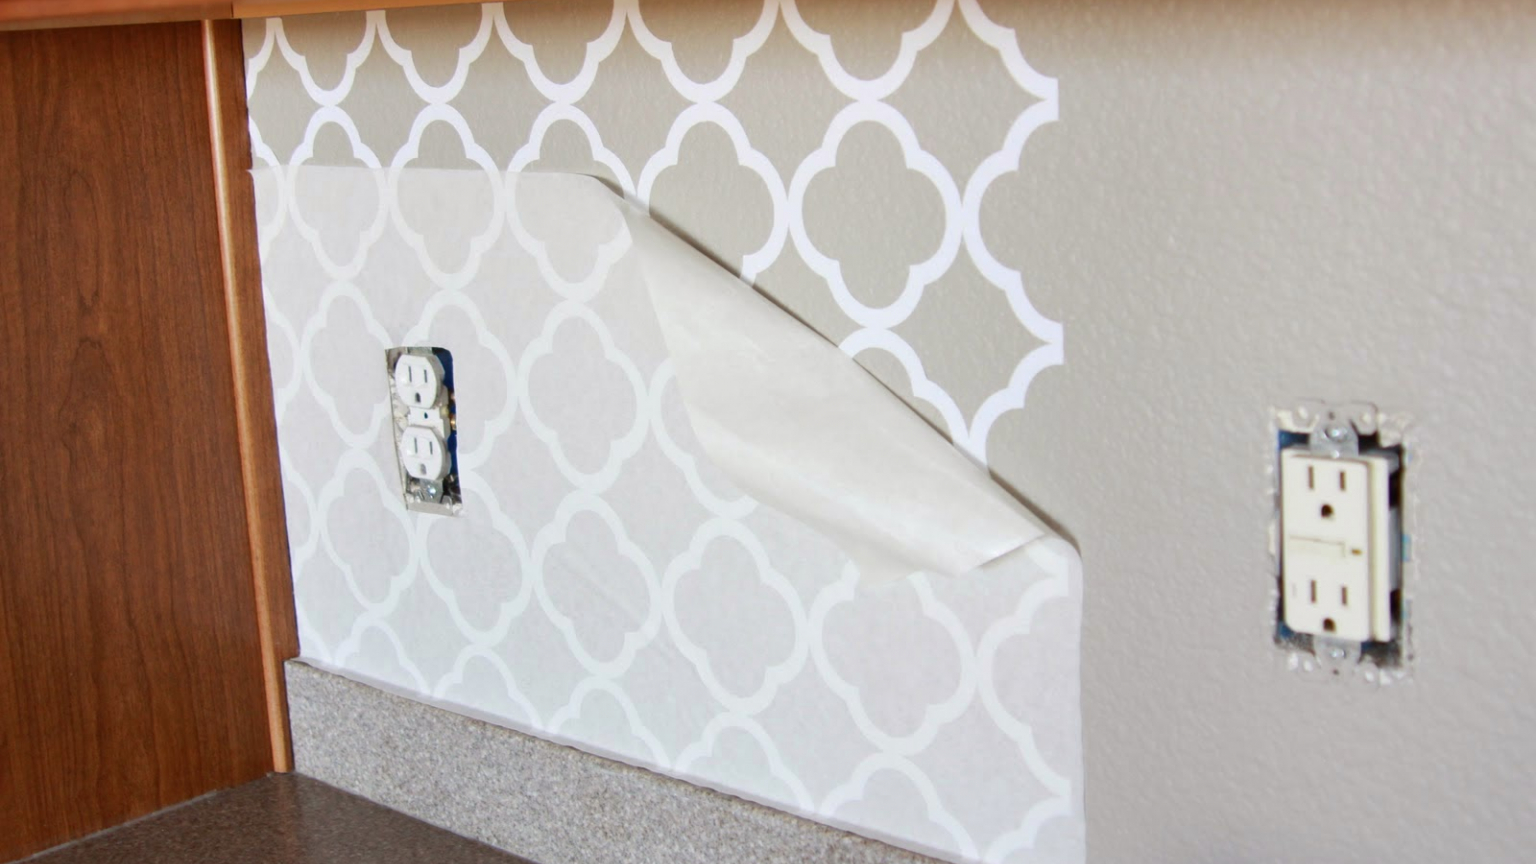 - Free Download The Happy Chateau Removable Kitchen Backsplashes